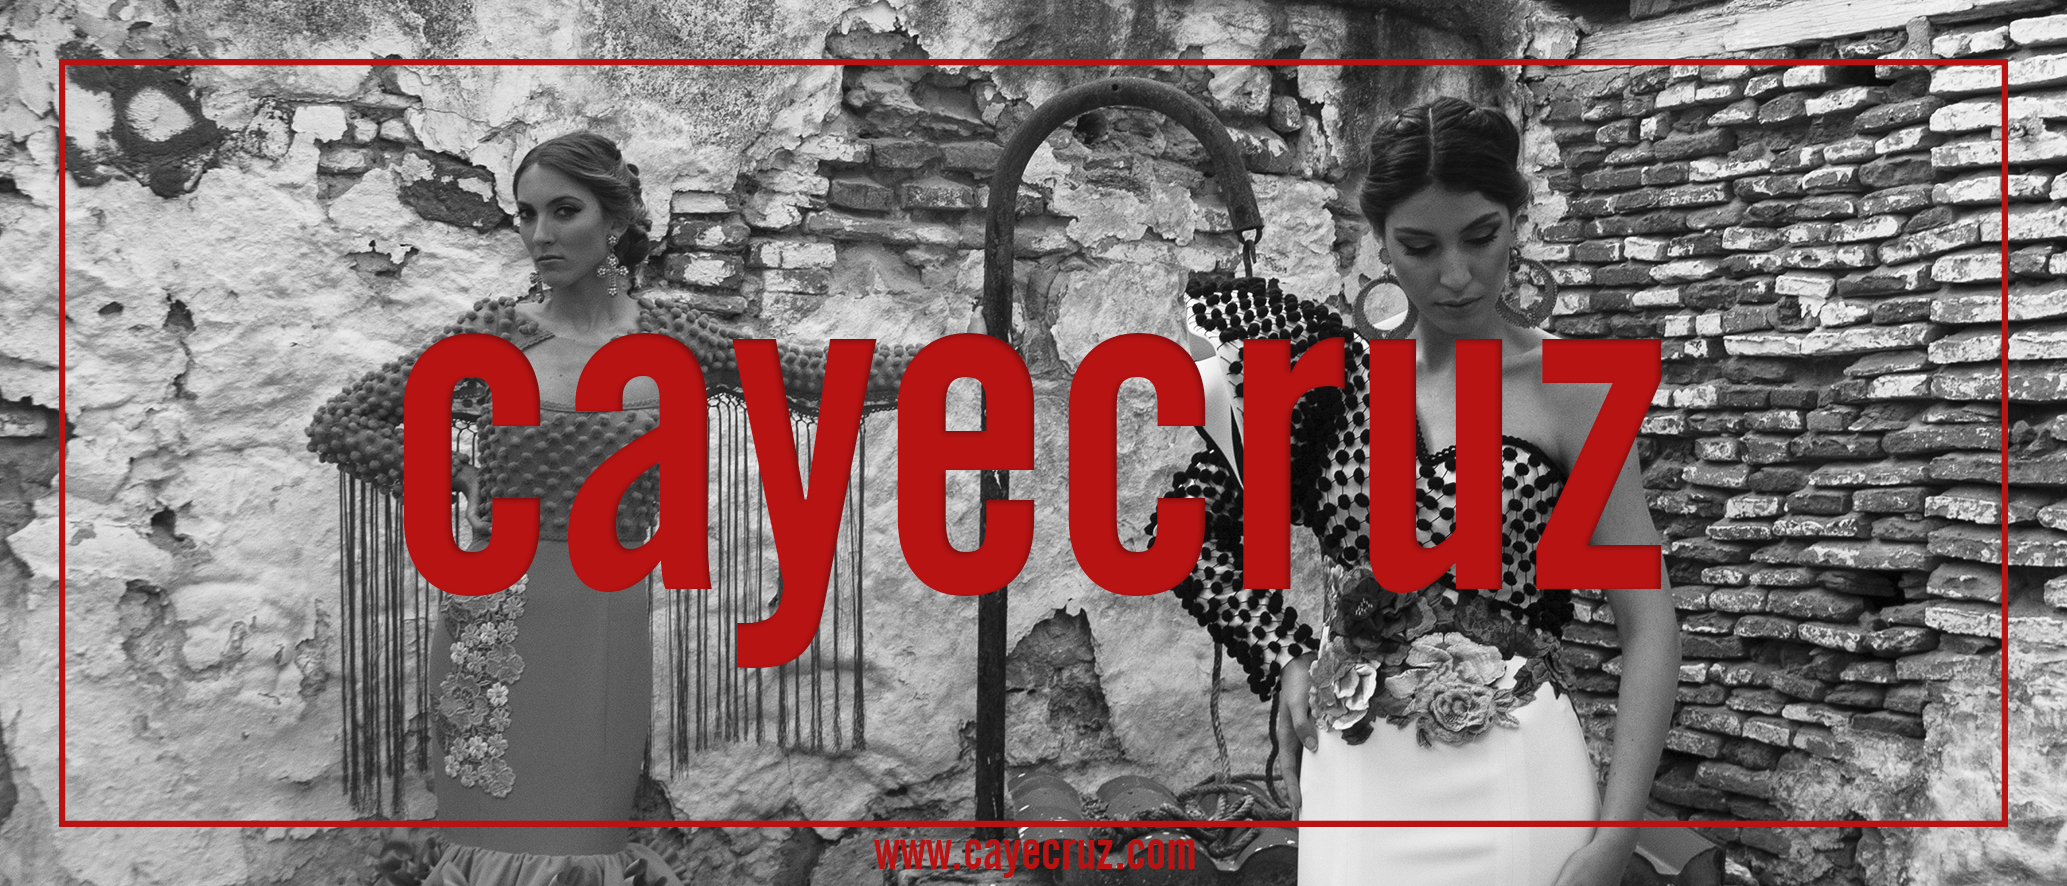 CayeCruz NO cubrirá We Love Flamenco 2017